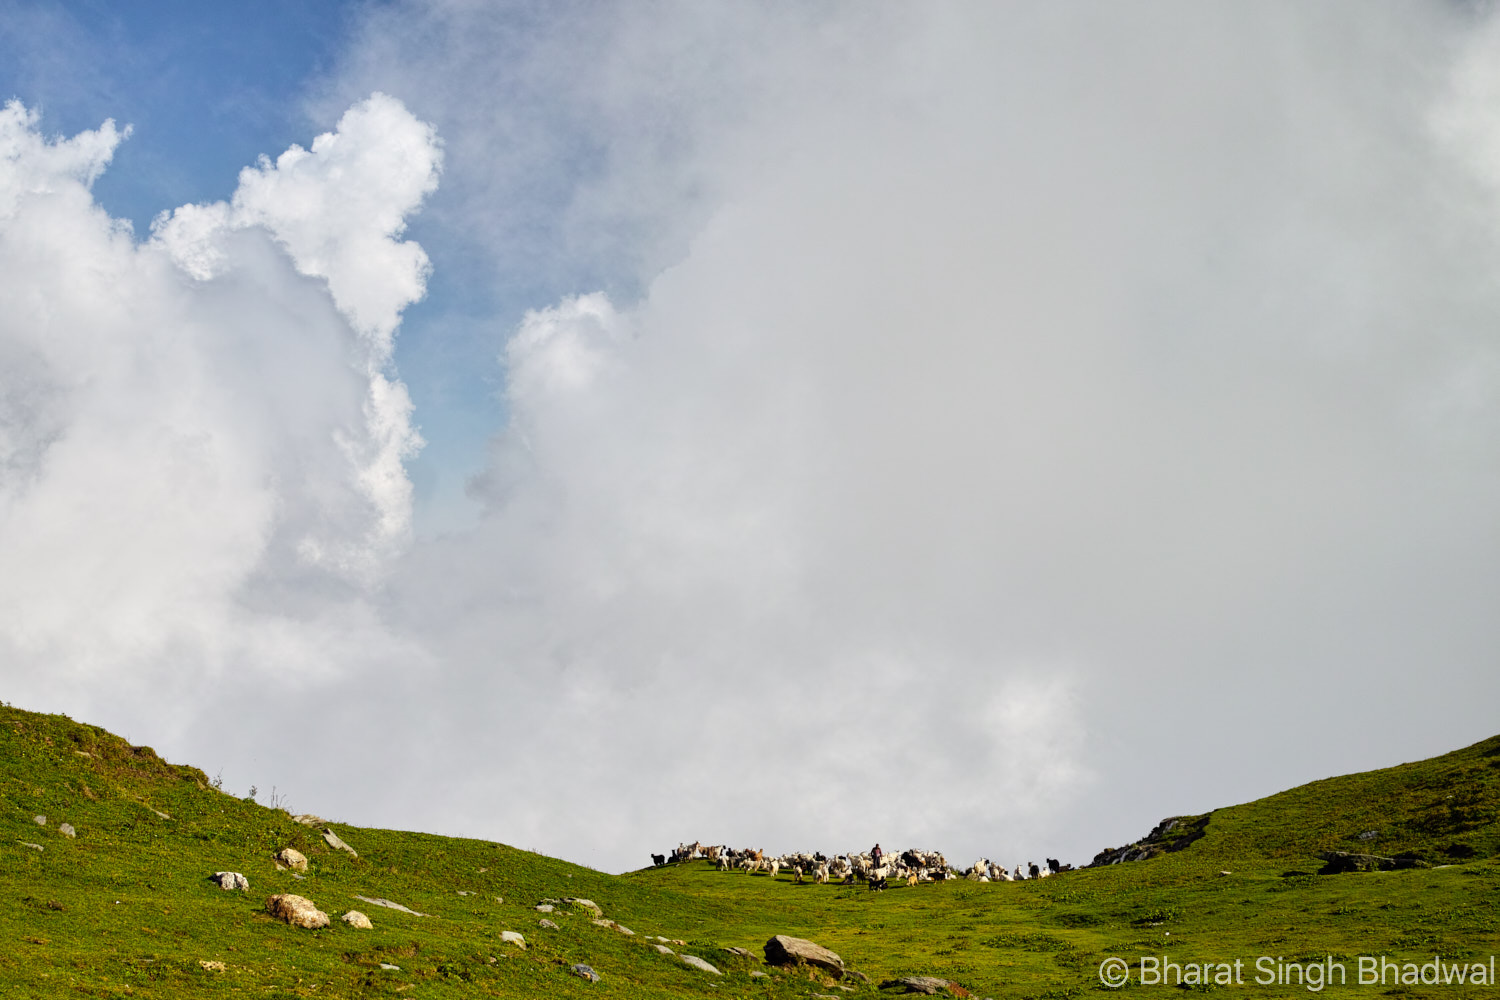 A flock of sheep and goat at Jalsu Pass